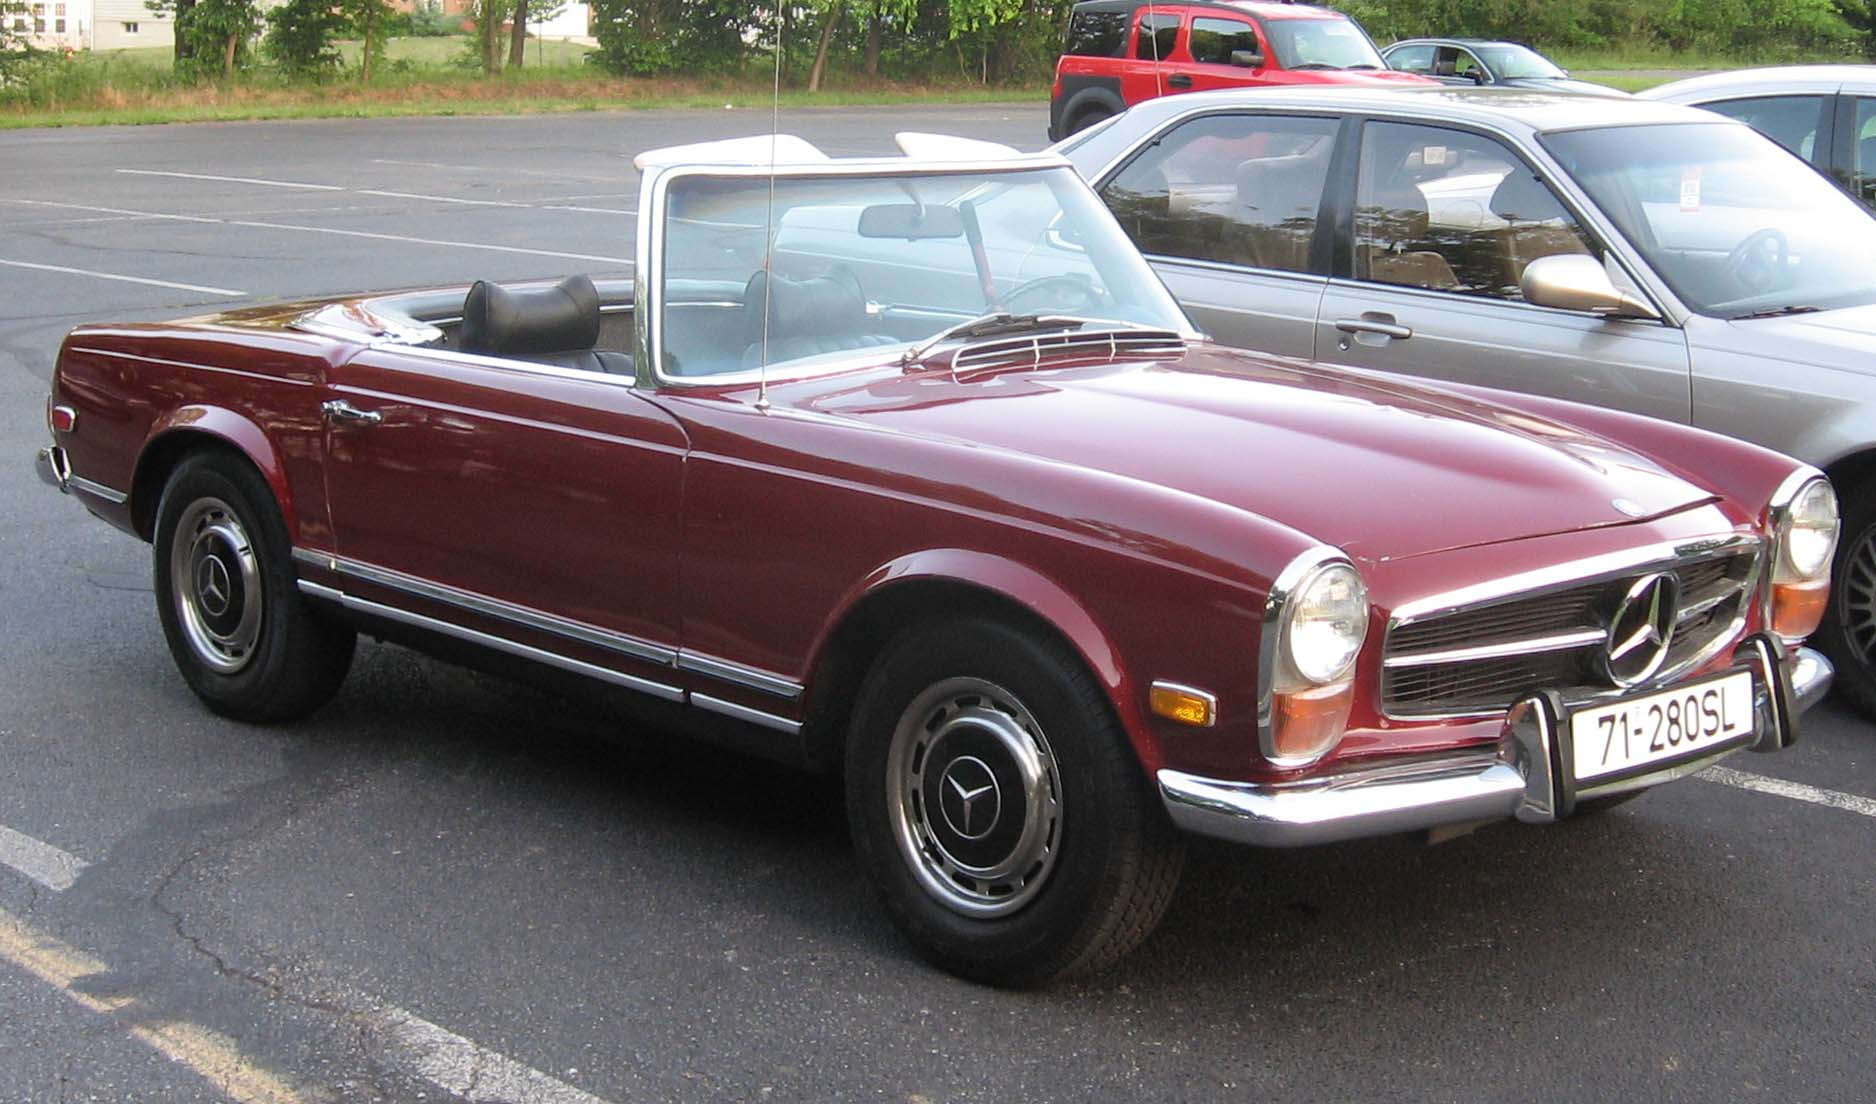 http://upload.wikimedia.org/wikipedia/commons/0/0e/71-Mercedes-Benz-280SL-1.jpg